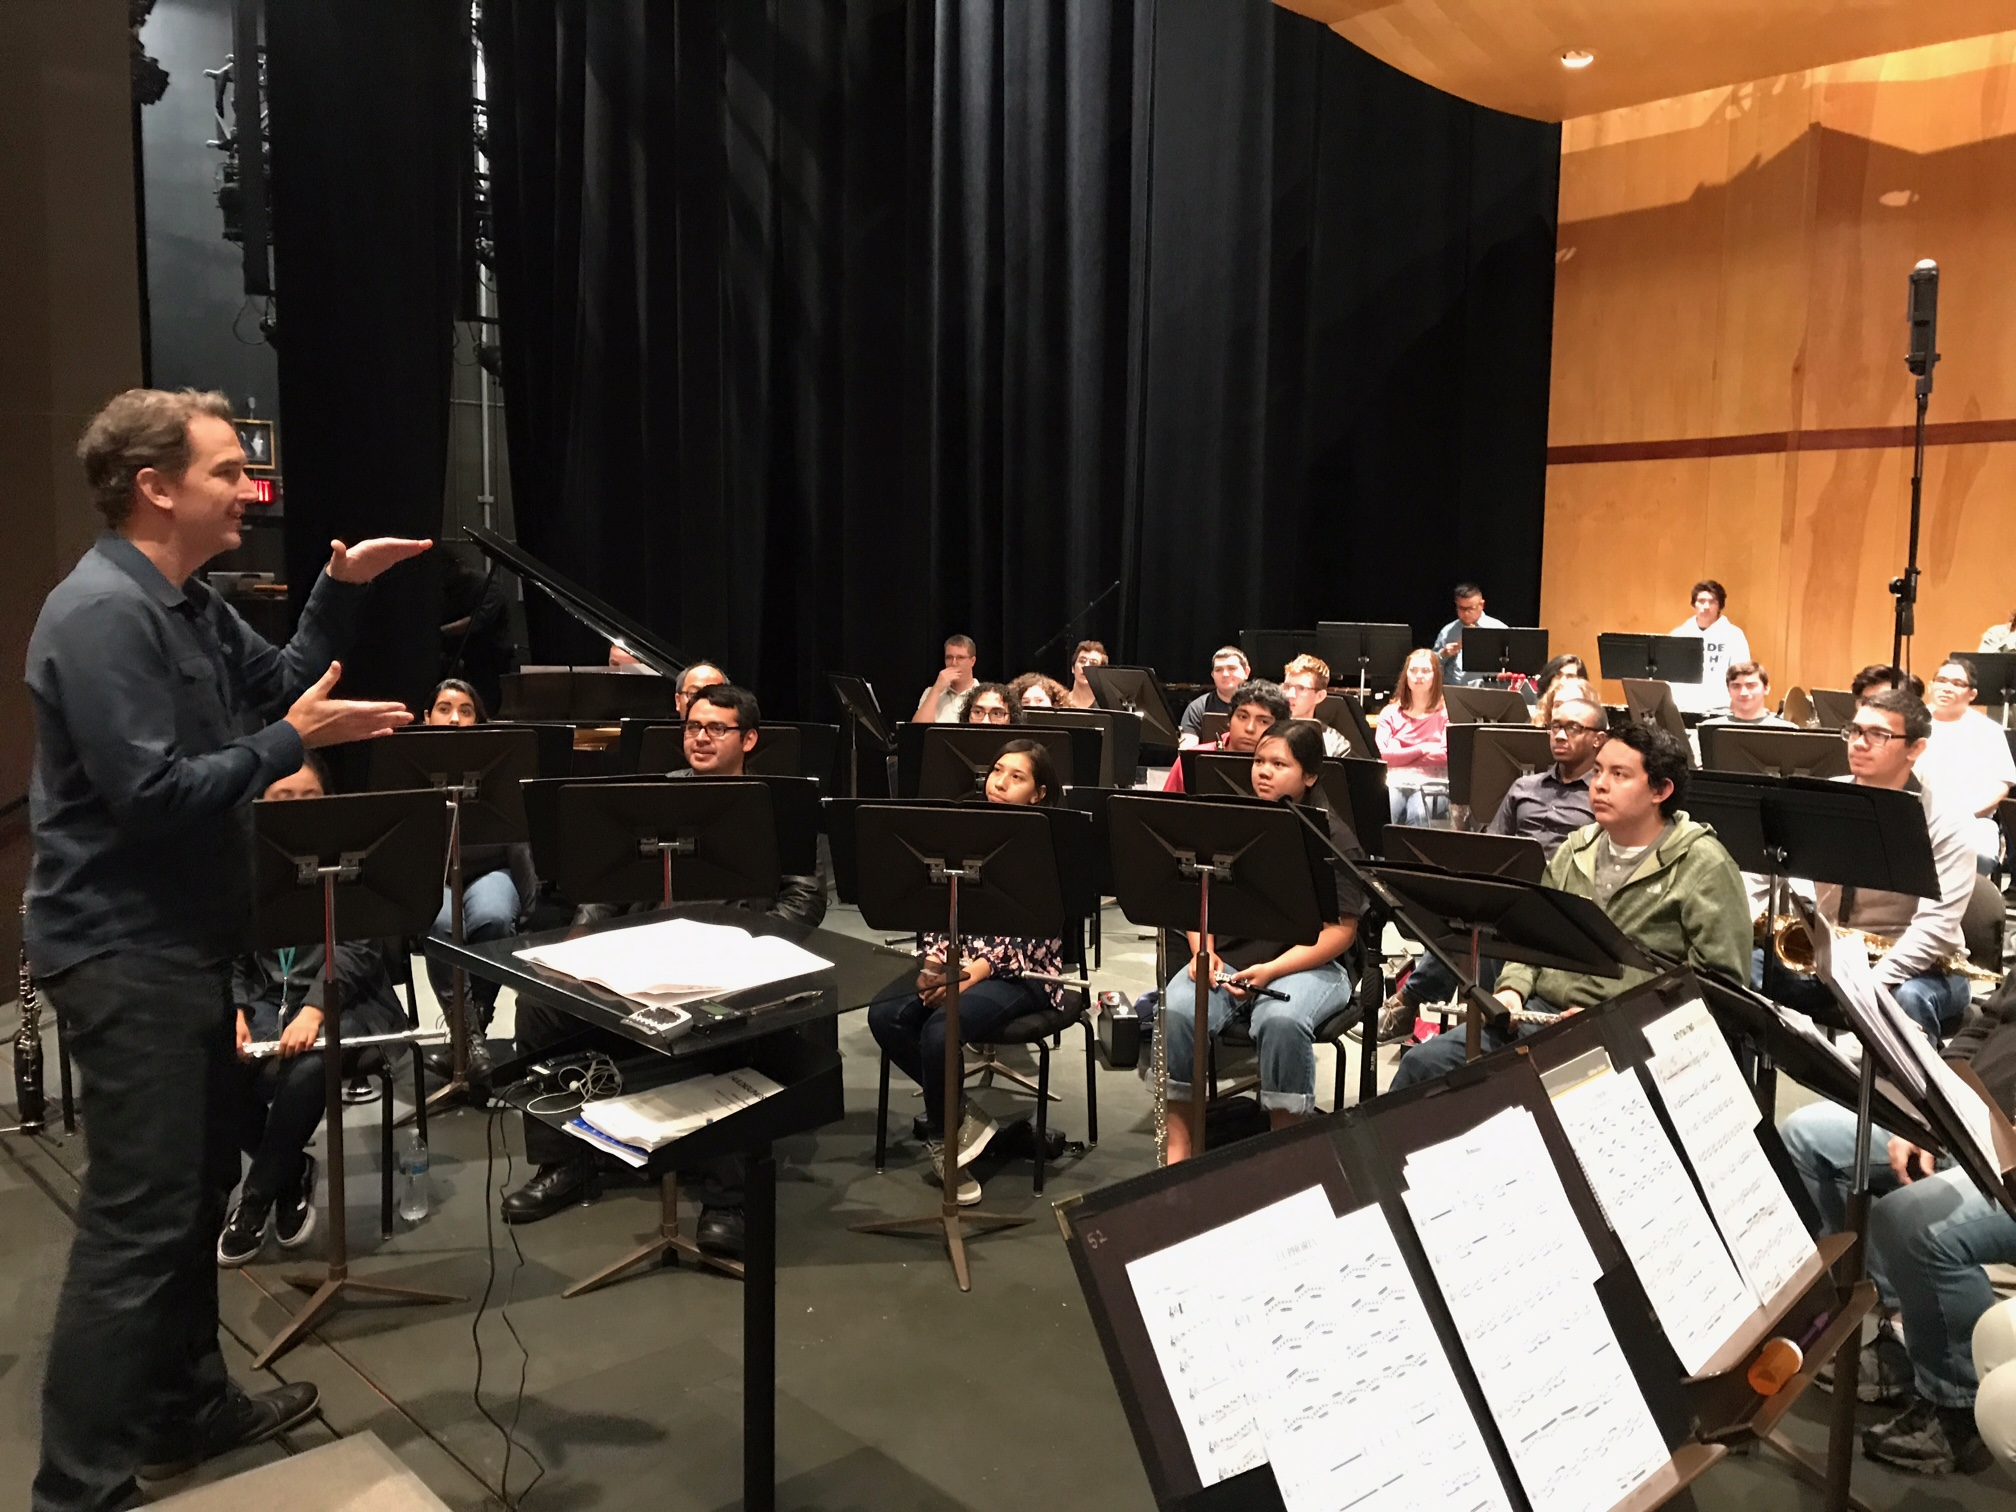 In rehearsal with the Mt. San Antonio College Wind Ensemble.